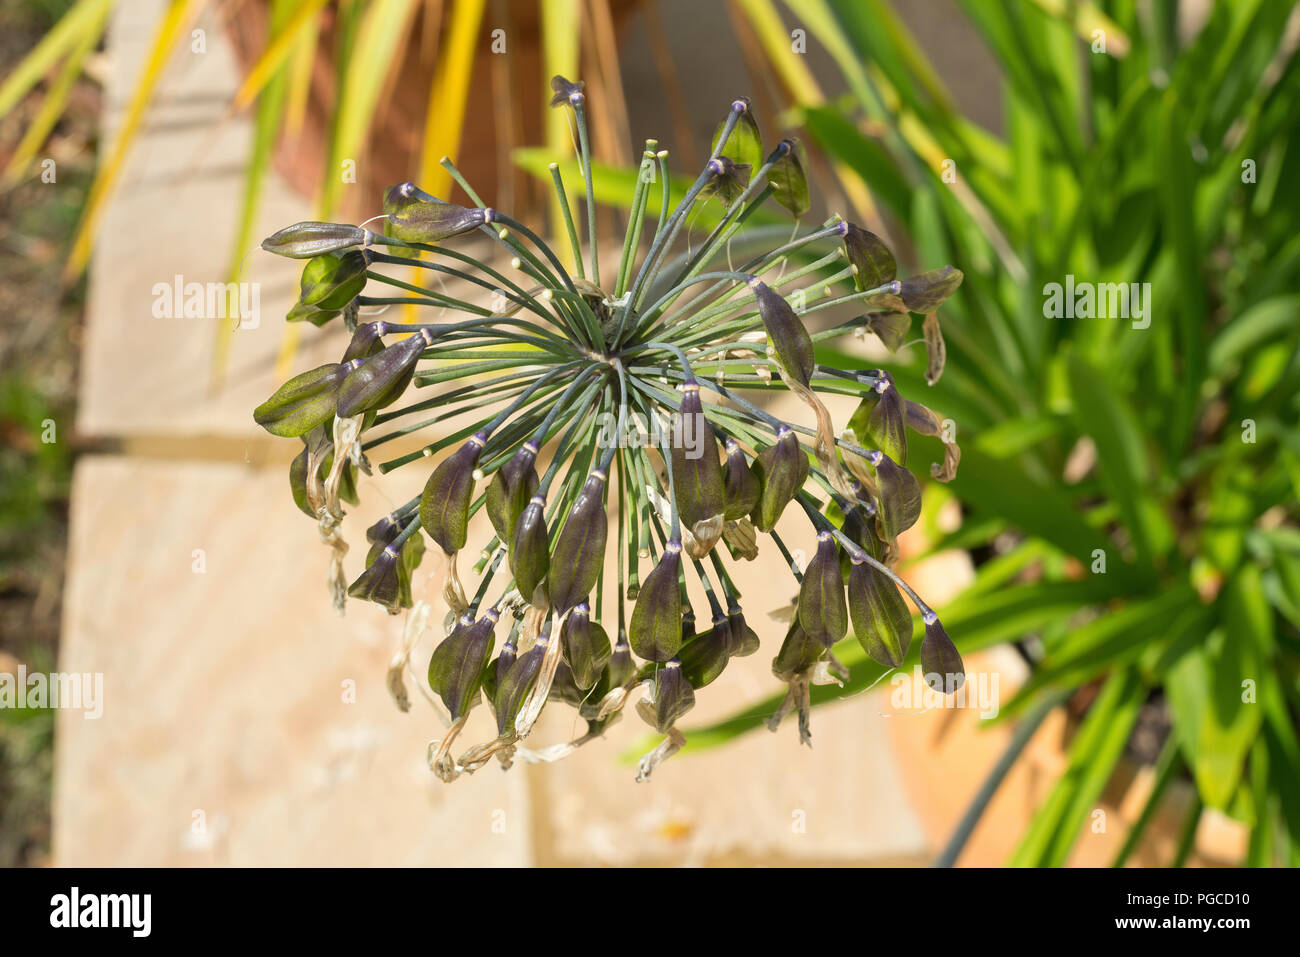 Agapanthus seed head at the end of summer flowering. Late August in the UK. Stock Photo